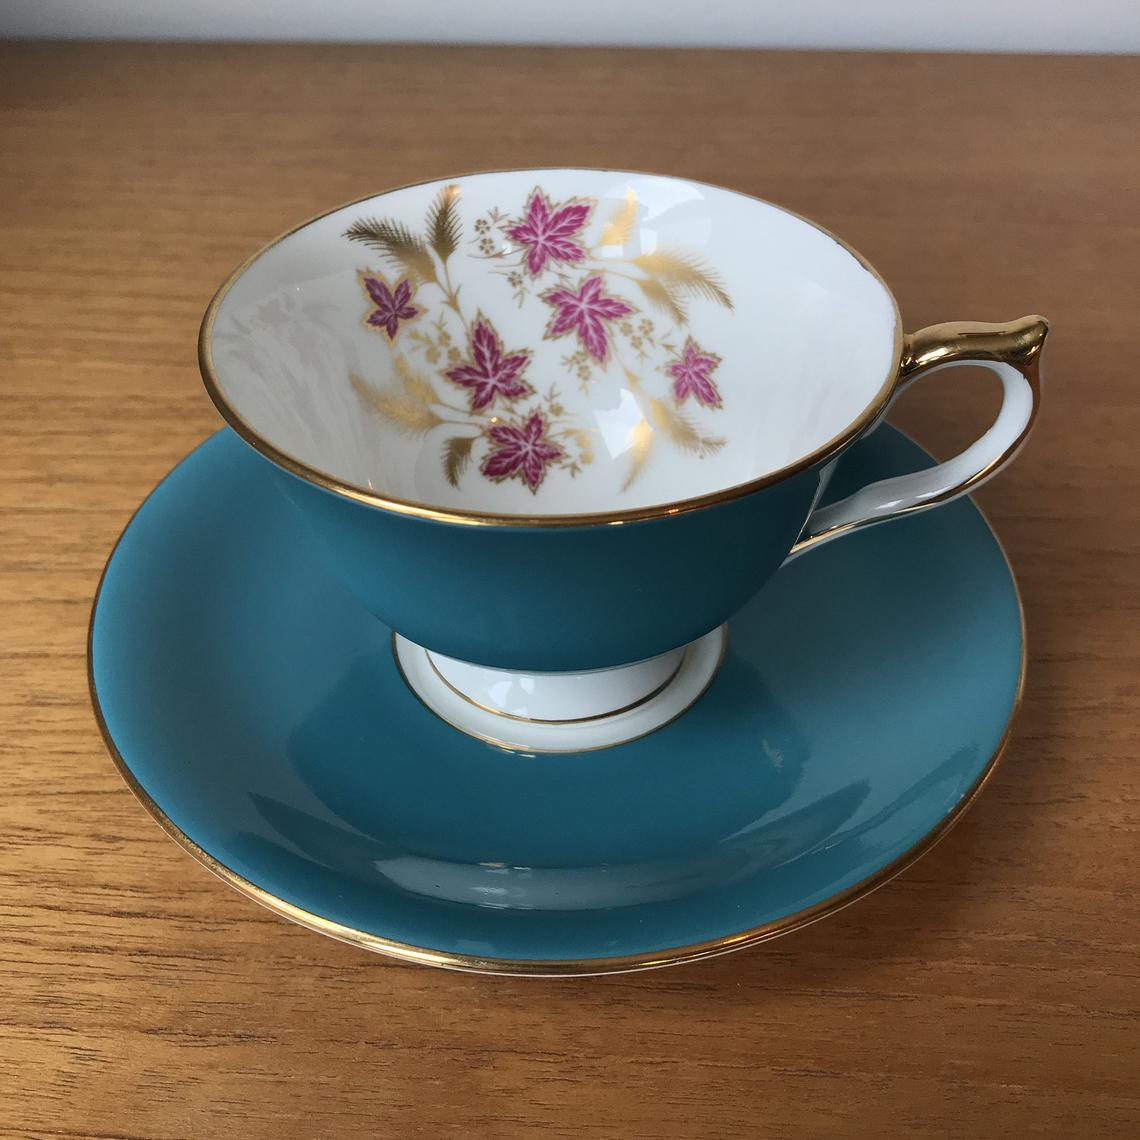 Aynsley Vintage Teacup and Saucer, Dark Turquoise Blue Tea Cup and Saucer w/ Purple Leaves Gold Leaf, English Bone China